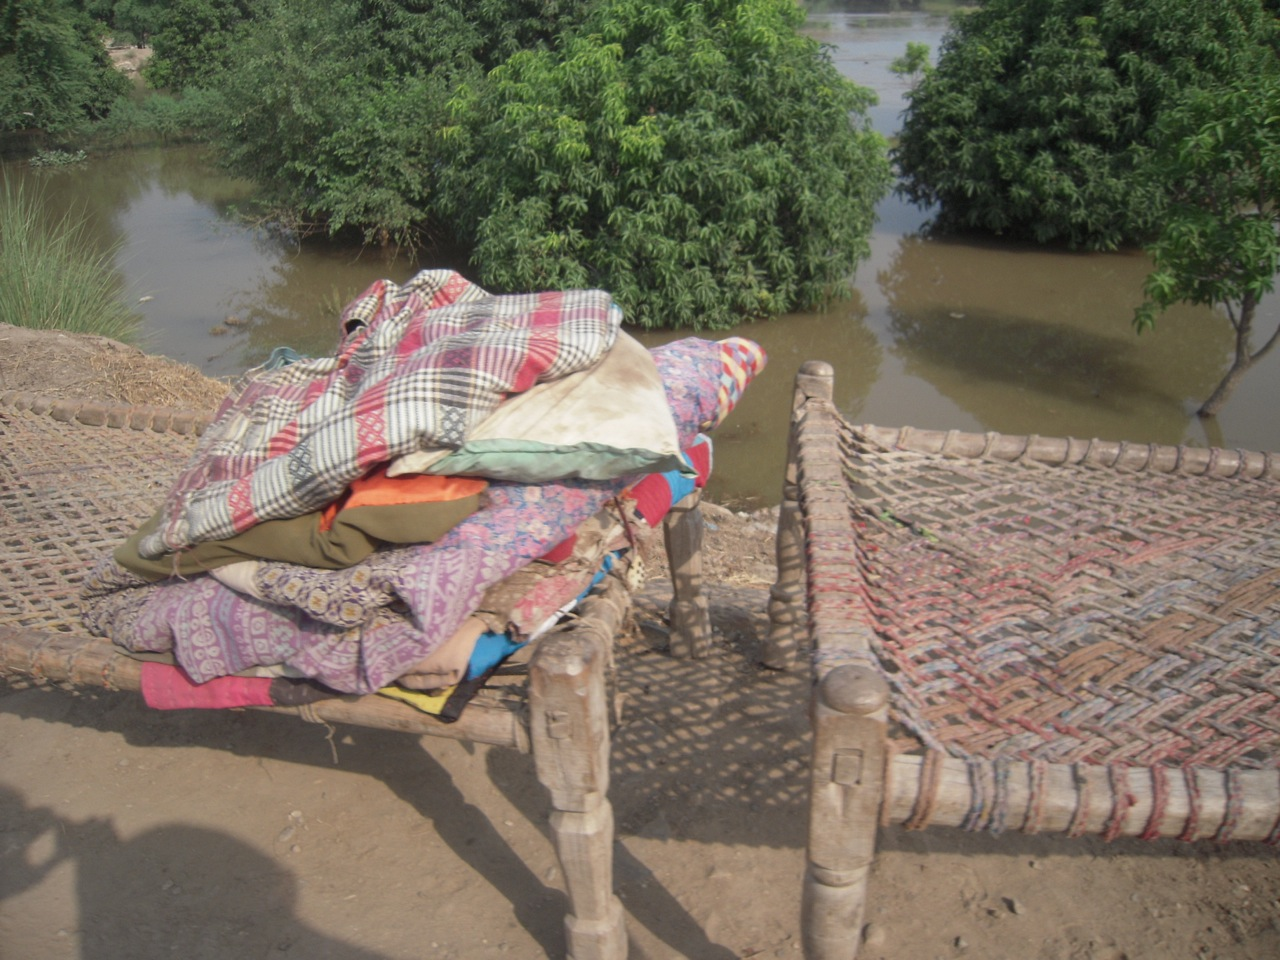 Charpai (wooden frame bed) on the embankment